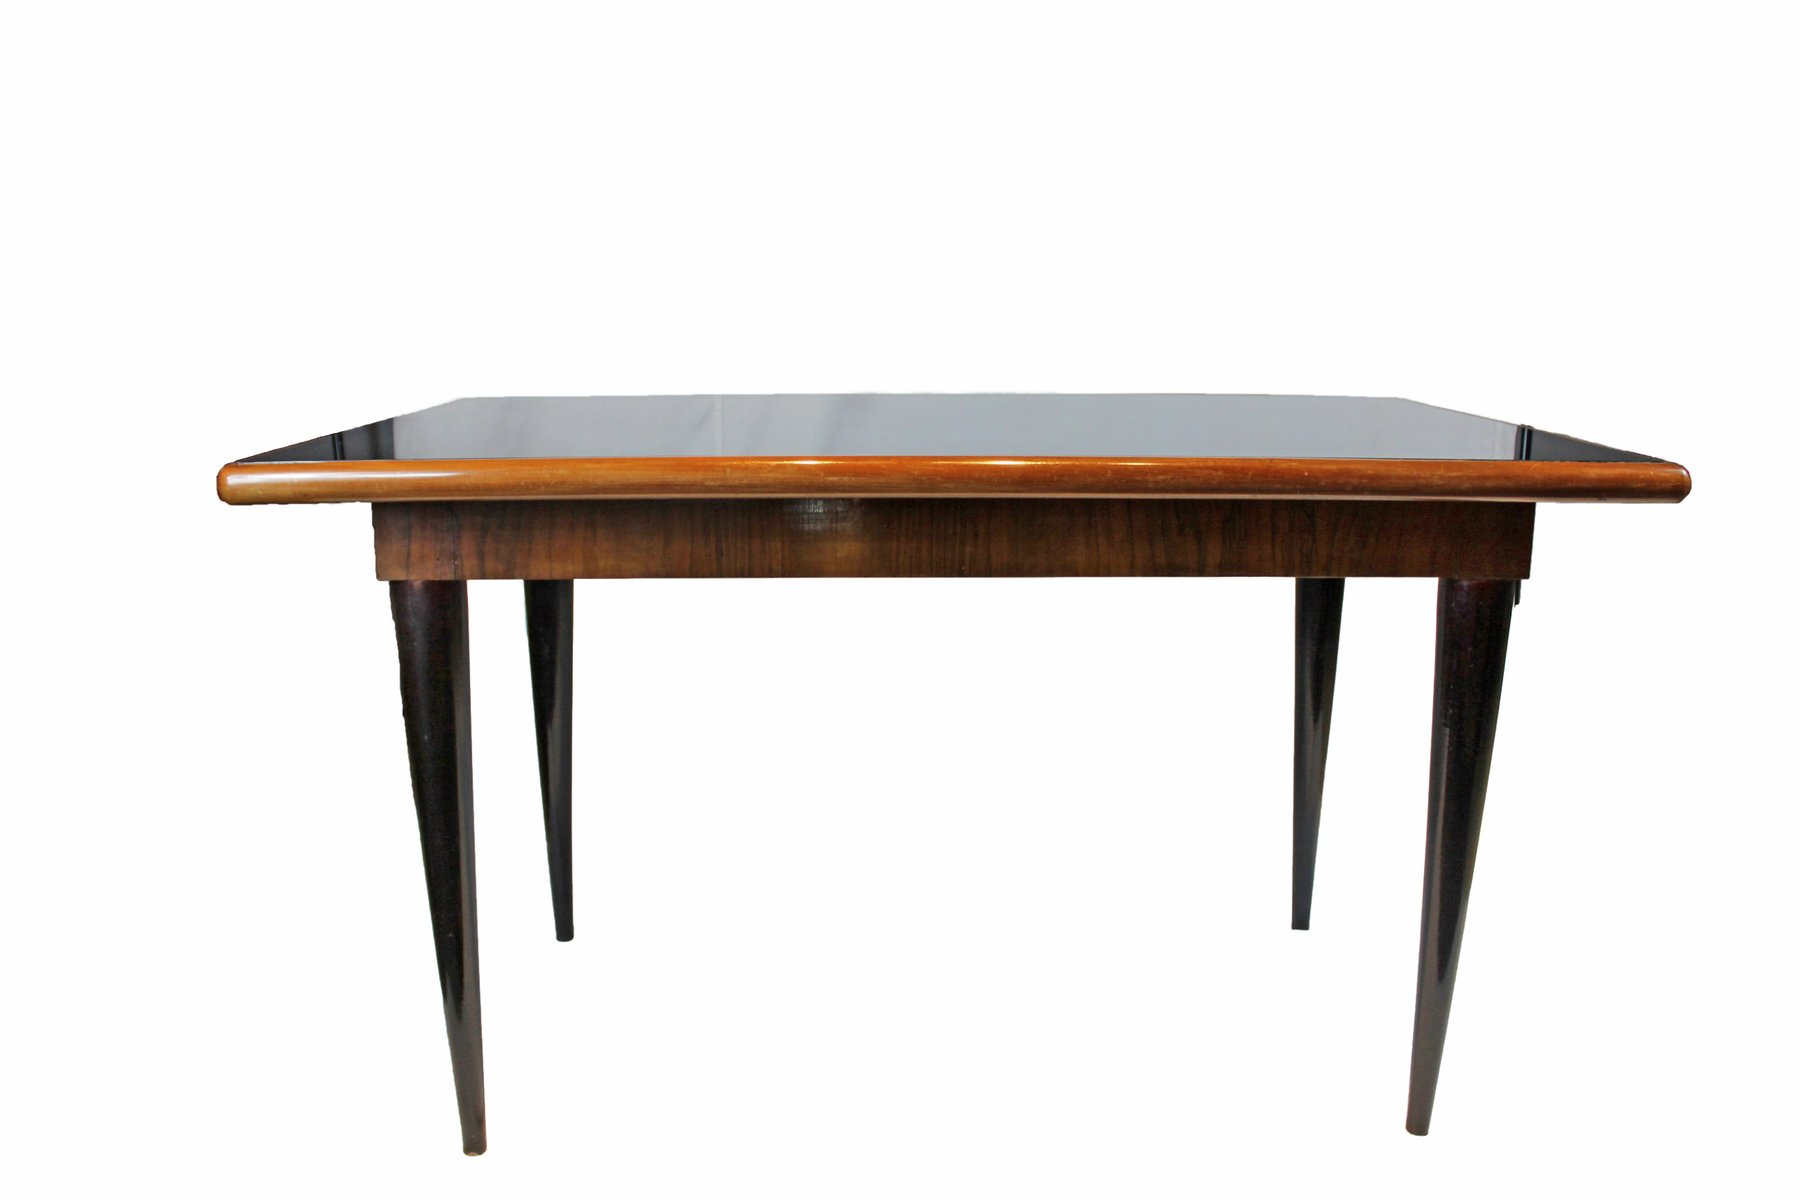 Italian Dining Table With Mirrored Black Glass, 1950s For Sale At Pamono